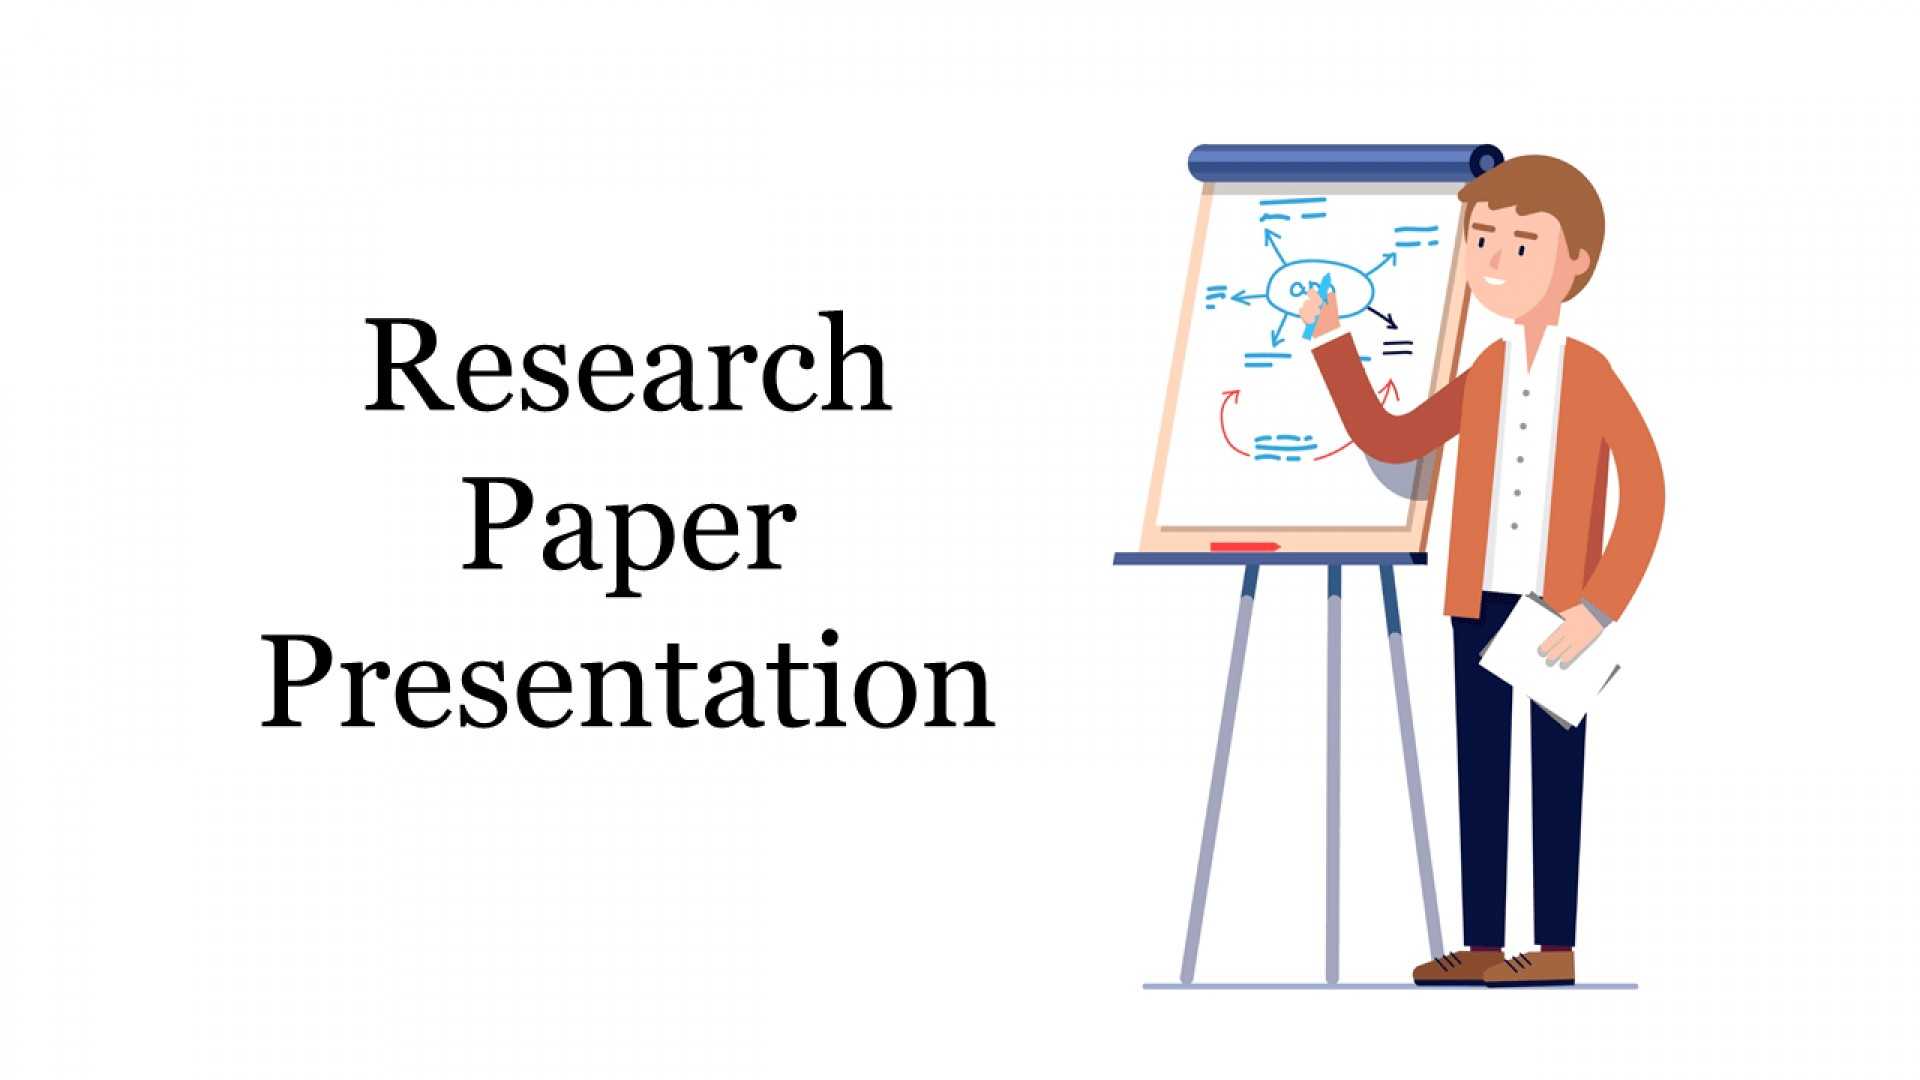 005 How To Research Paper Ppt Outstanding Publish Write Abstract For Prepare 1920